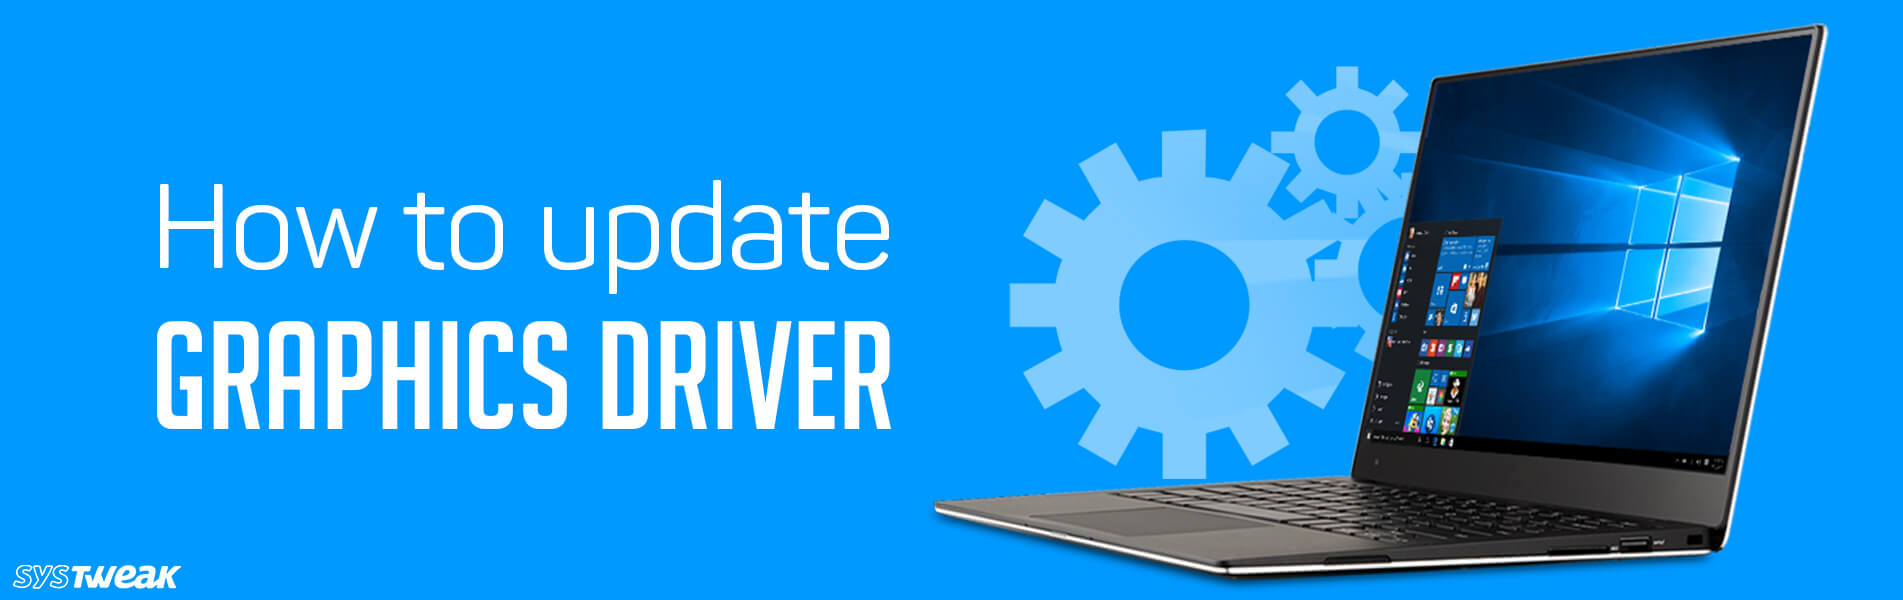 How To Update Graphics Driver In Windows 10, 8, 7